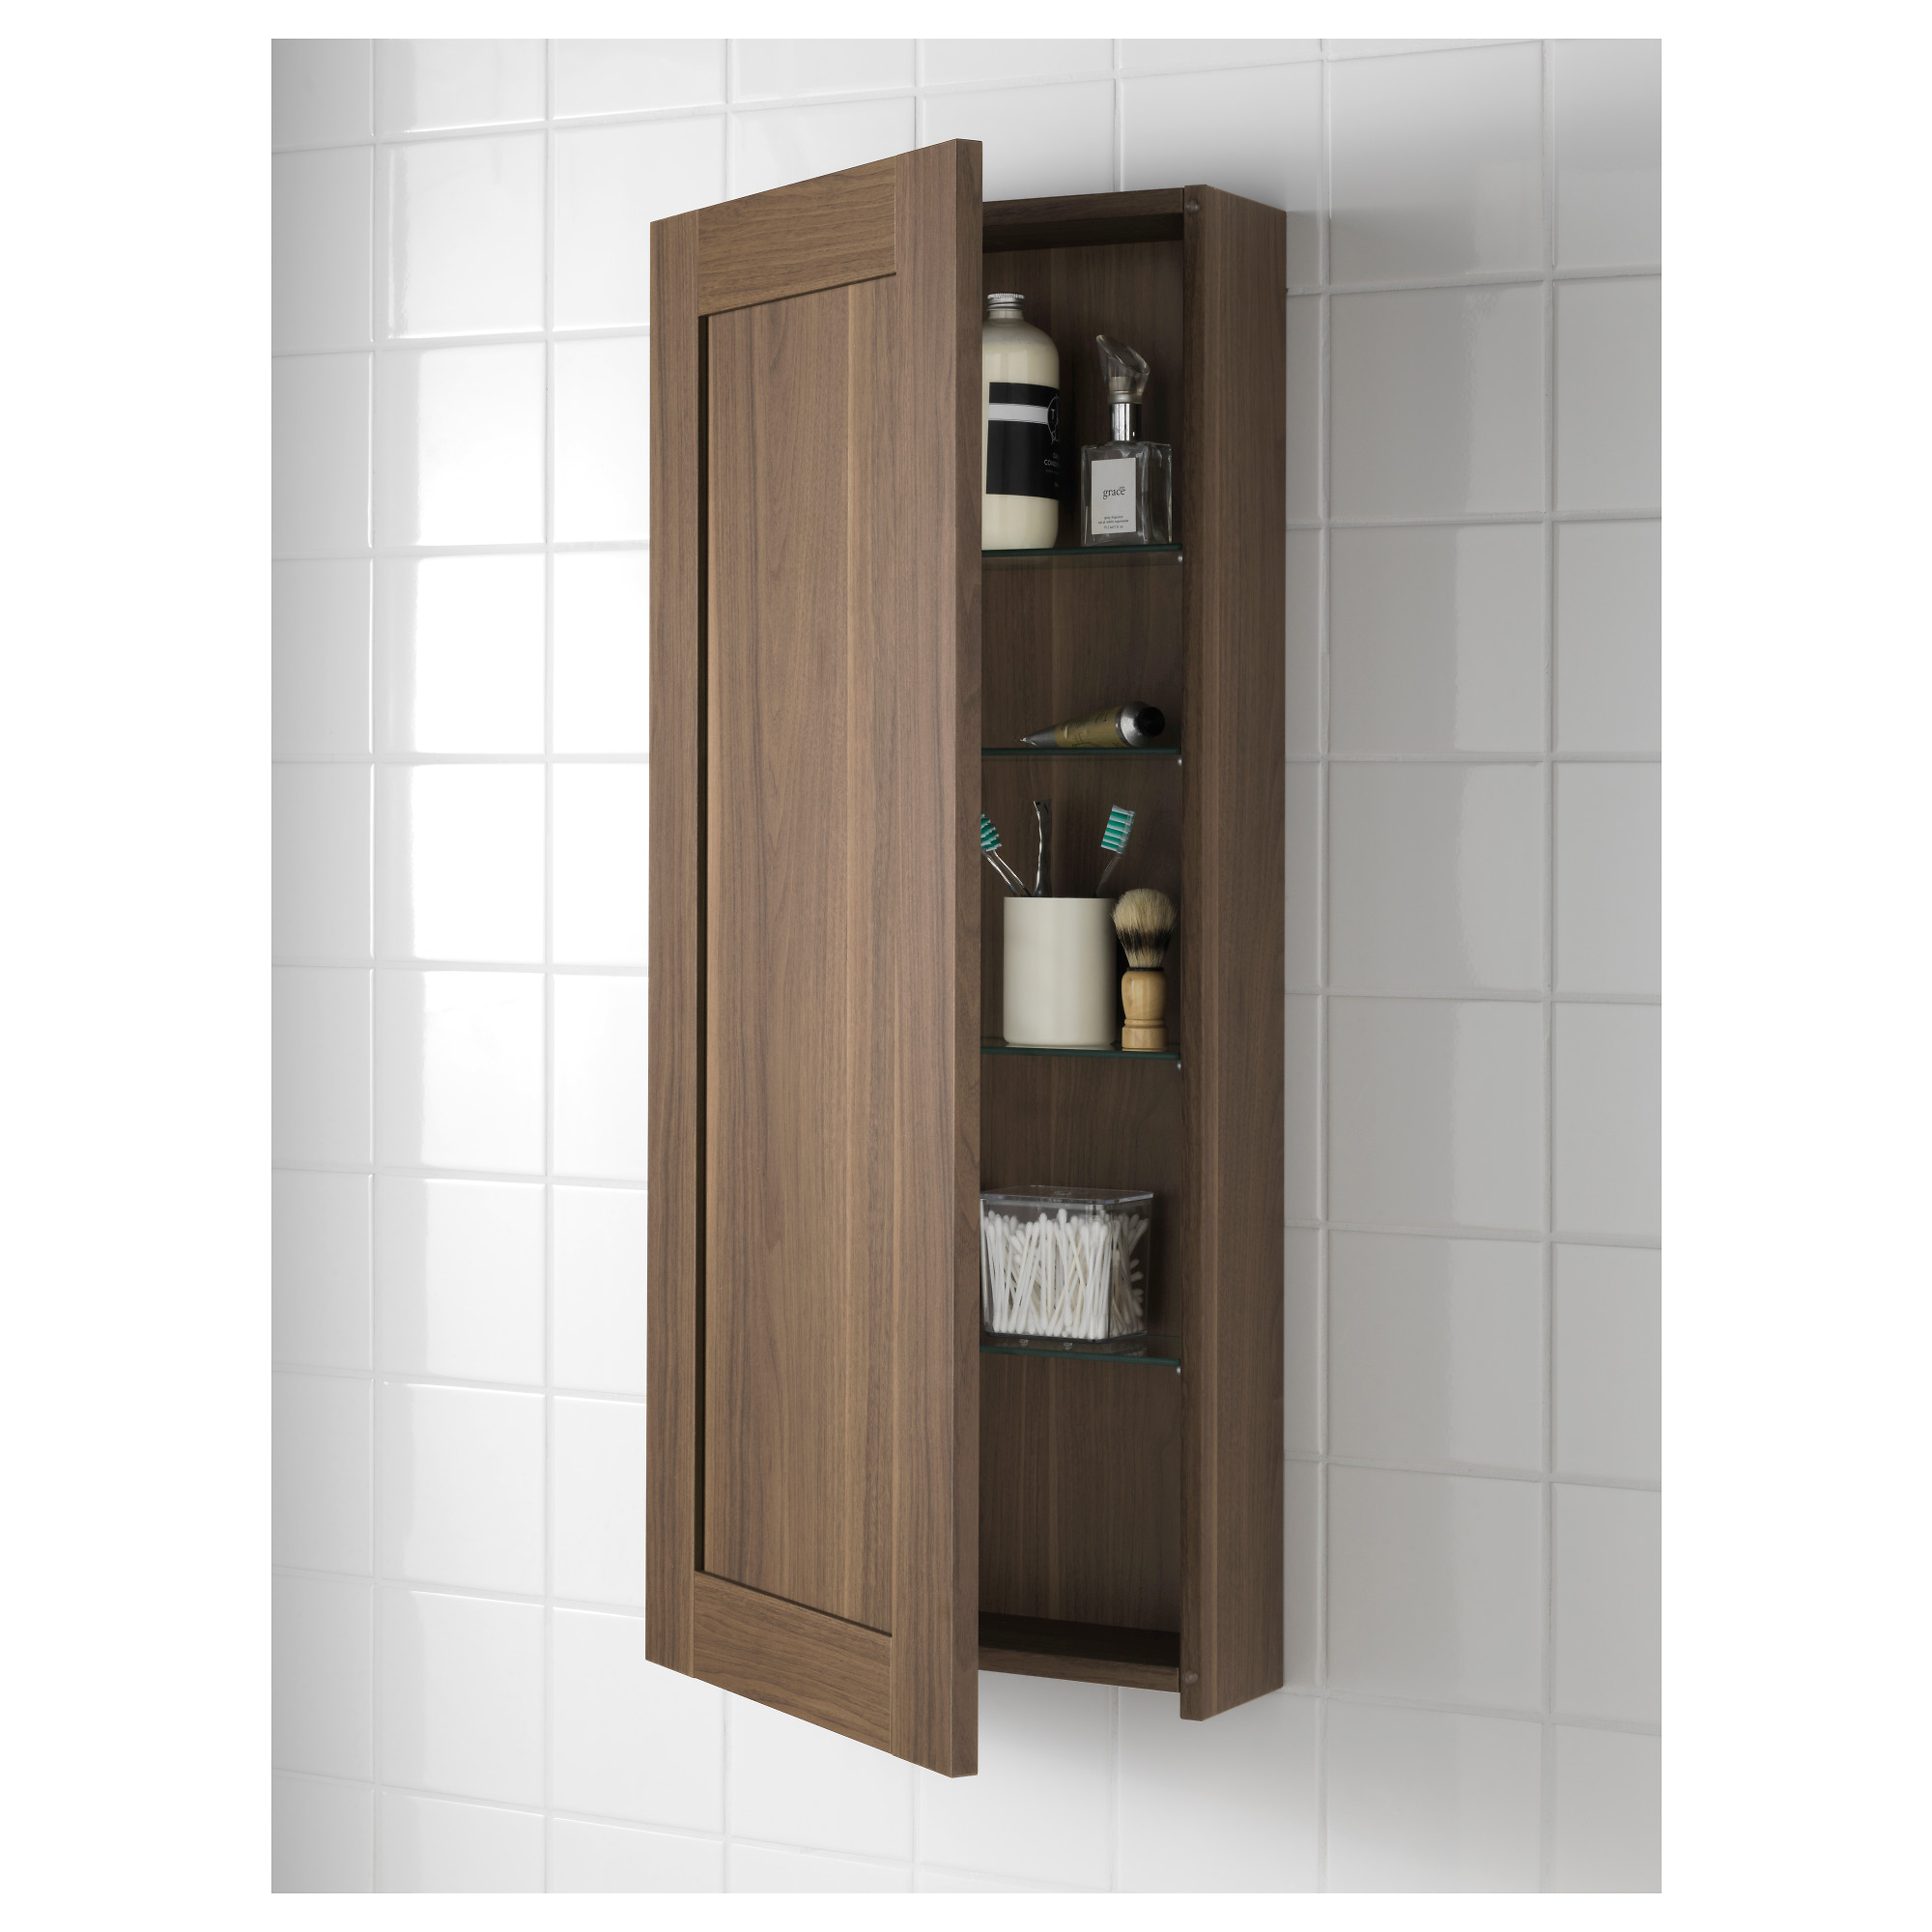 Wall Cupboards godmorgon wall cabinet with 1 door - black-brown - ikea